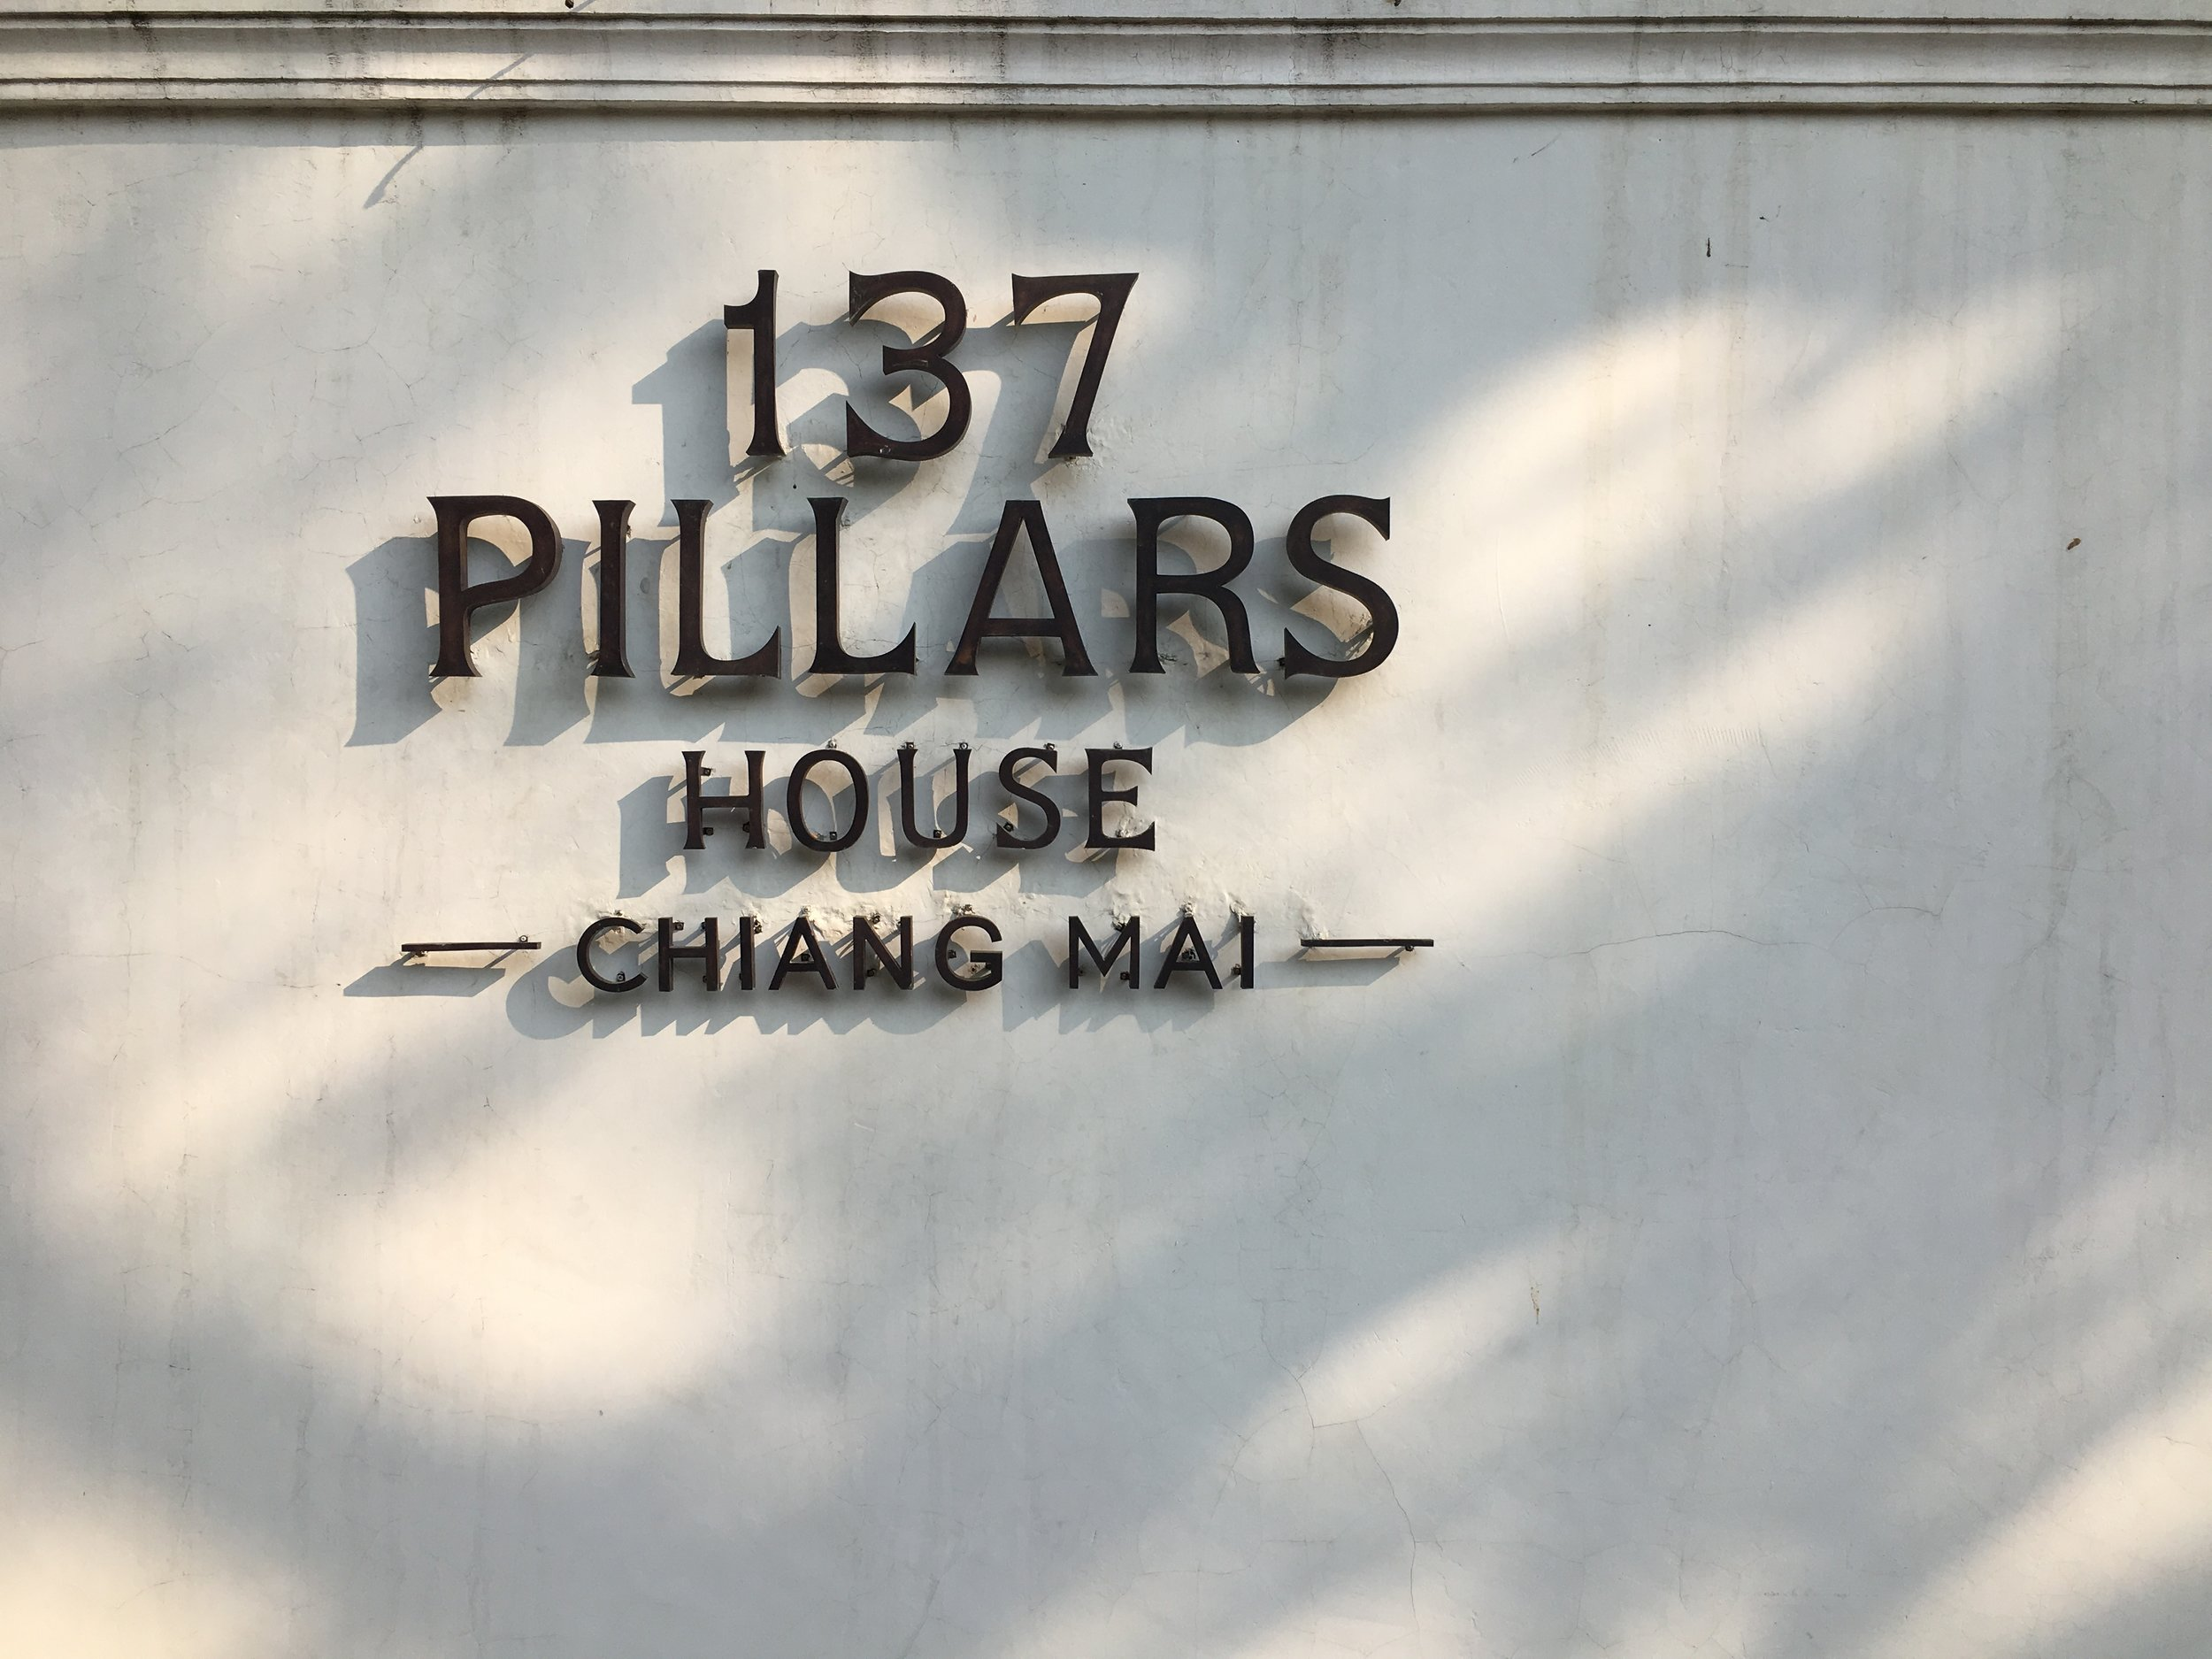 One of the most luxurious hotels in Chiang Mai, 137 PIllars has a rich history